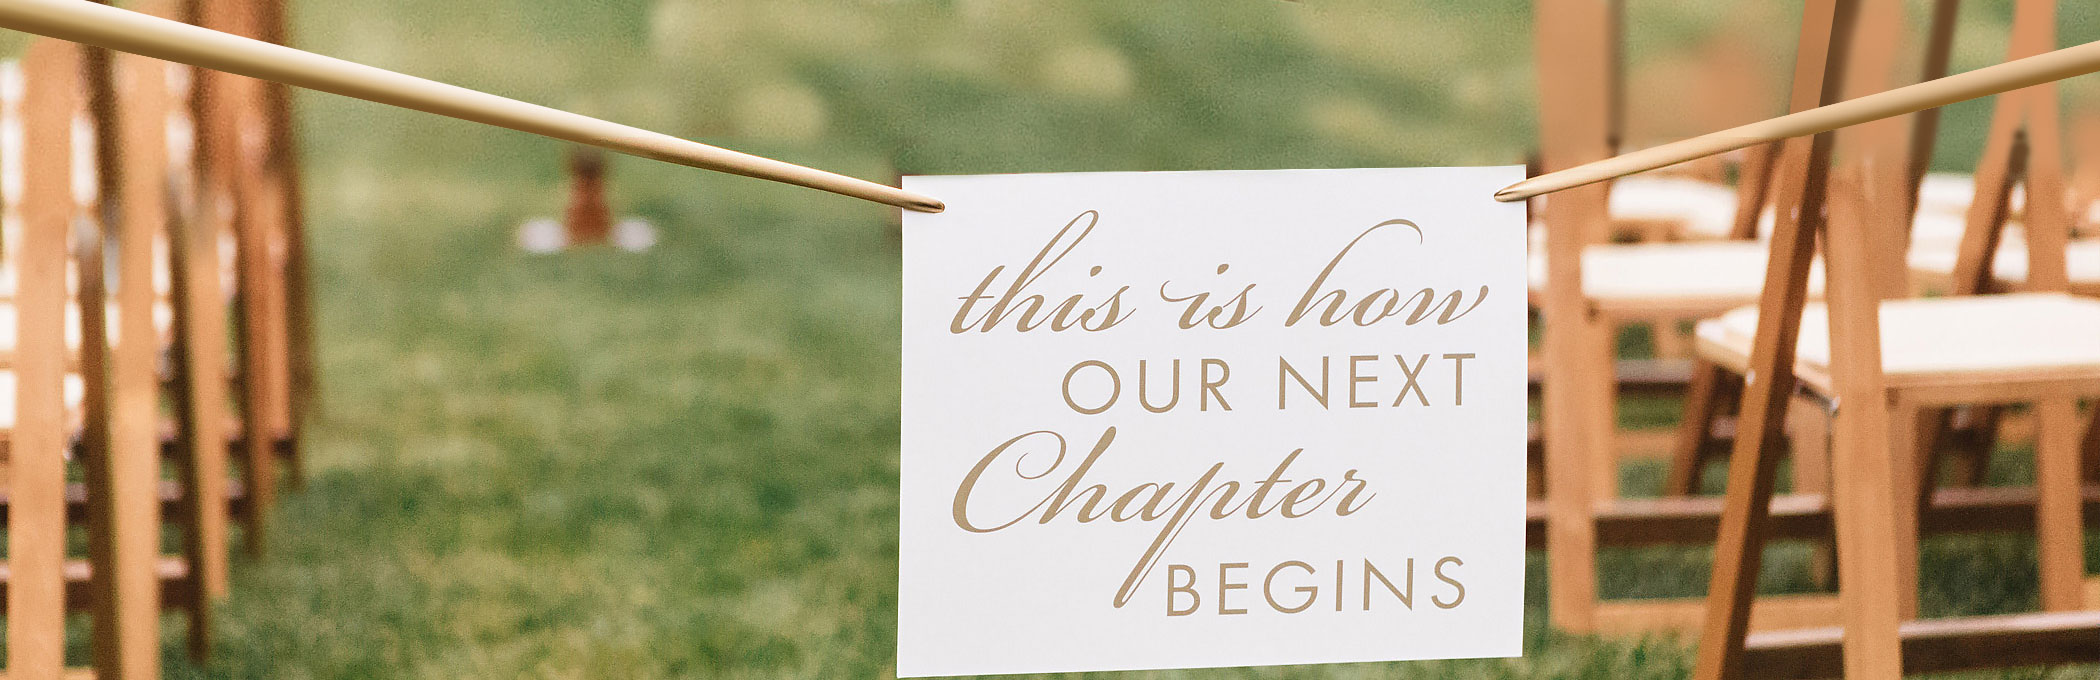 This is how our next chapter begins sign next to wedding ceremony chair set up